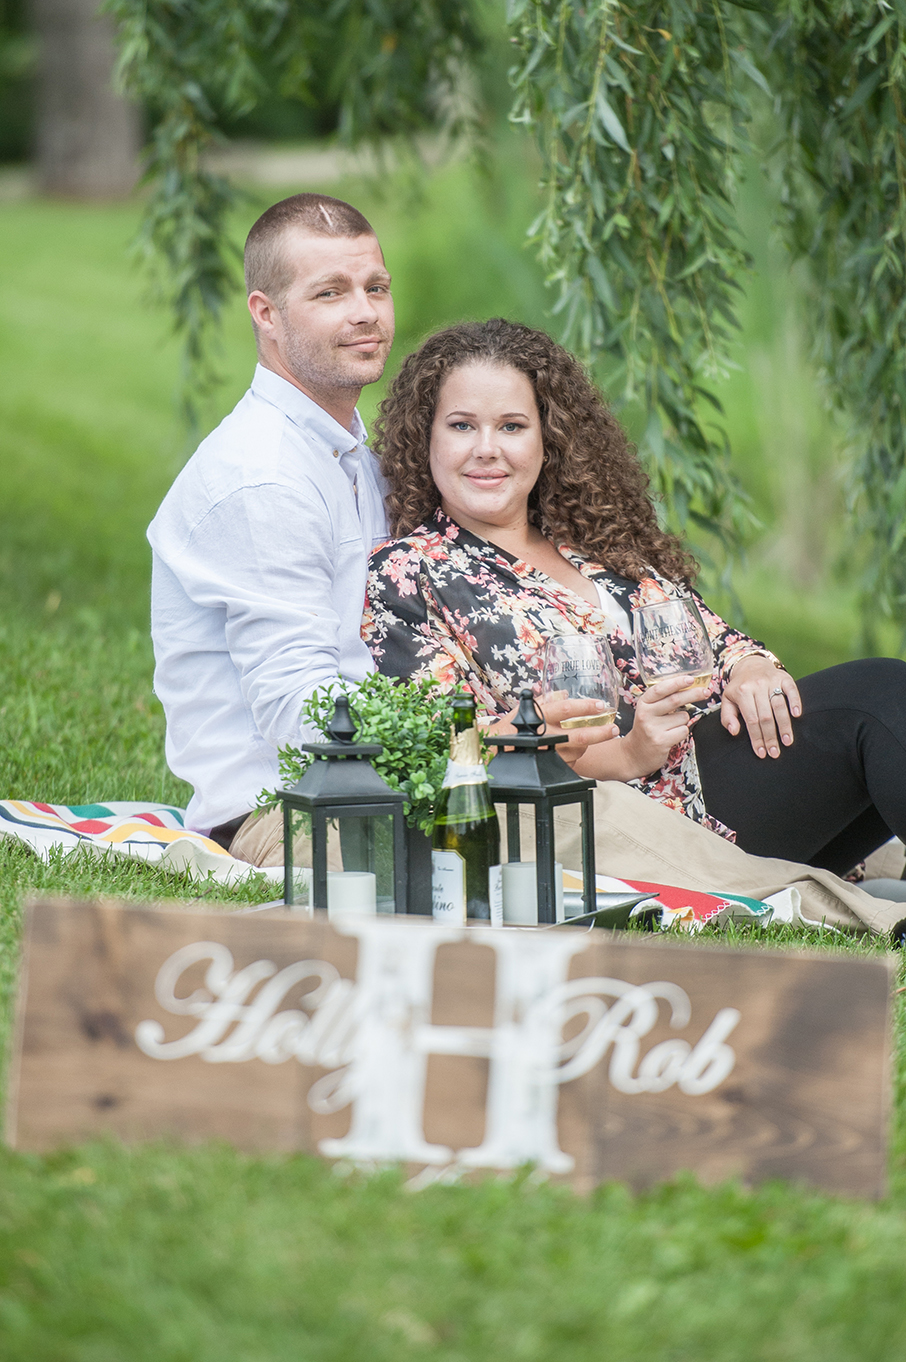 Holly&Rob_EngagementSession-81.jpg